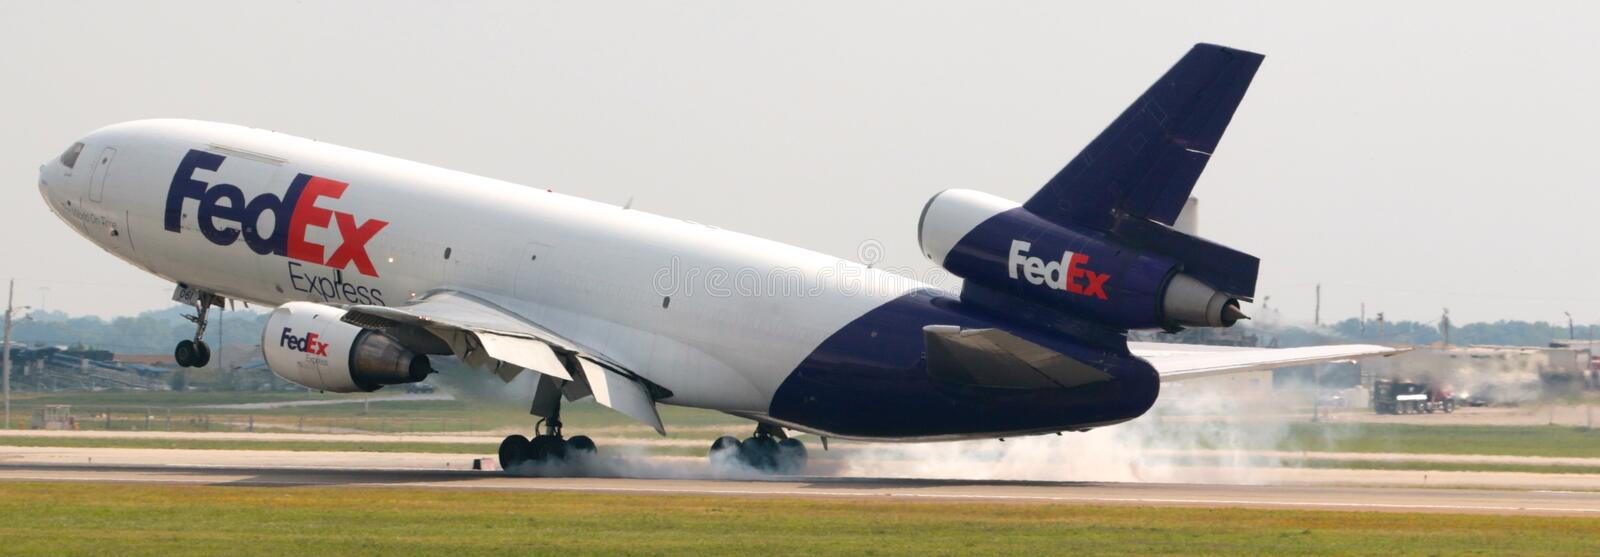 A FedEx Airplane touches down at the airport. stock photo